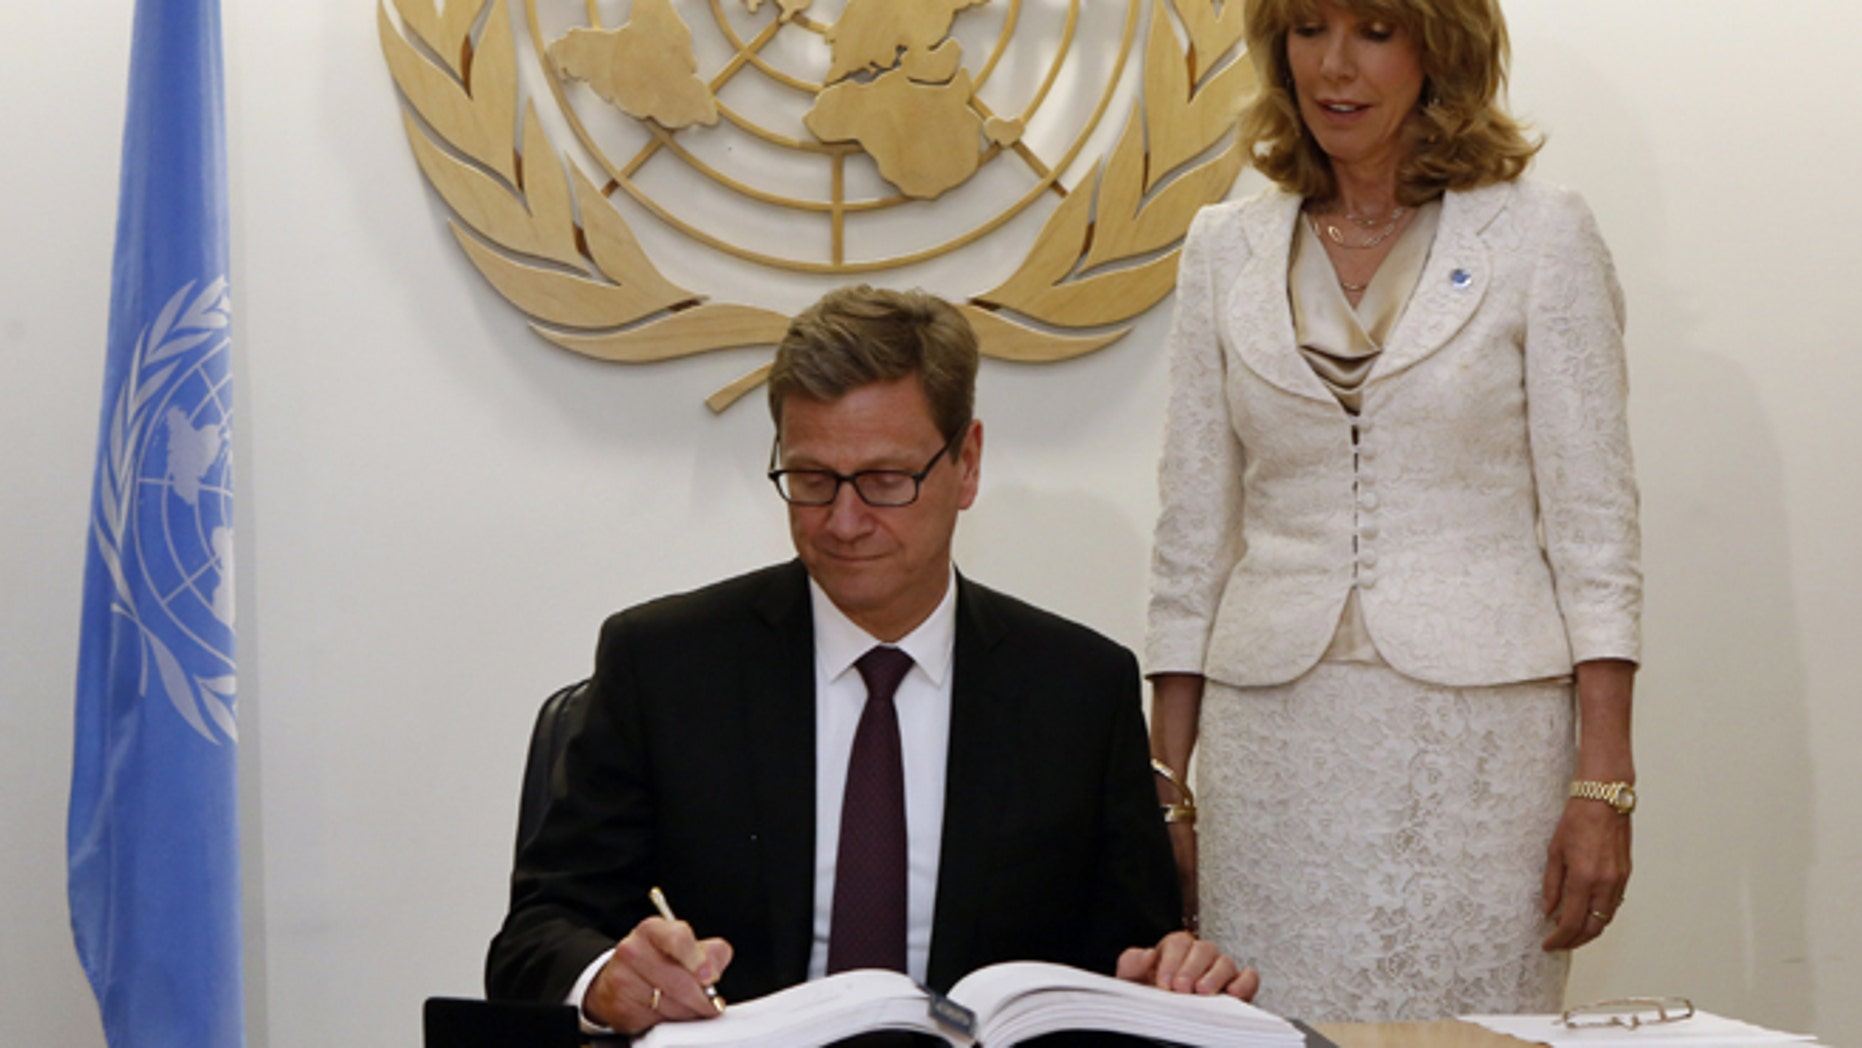 German Foreign Minister Guido Westerwelle signs the United Nations Arms Trade Treaty at the United Nations headquarters in New York, June 3, 2013. (REUTERS)